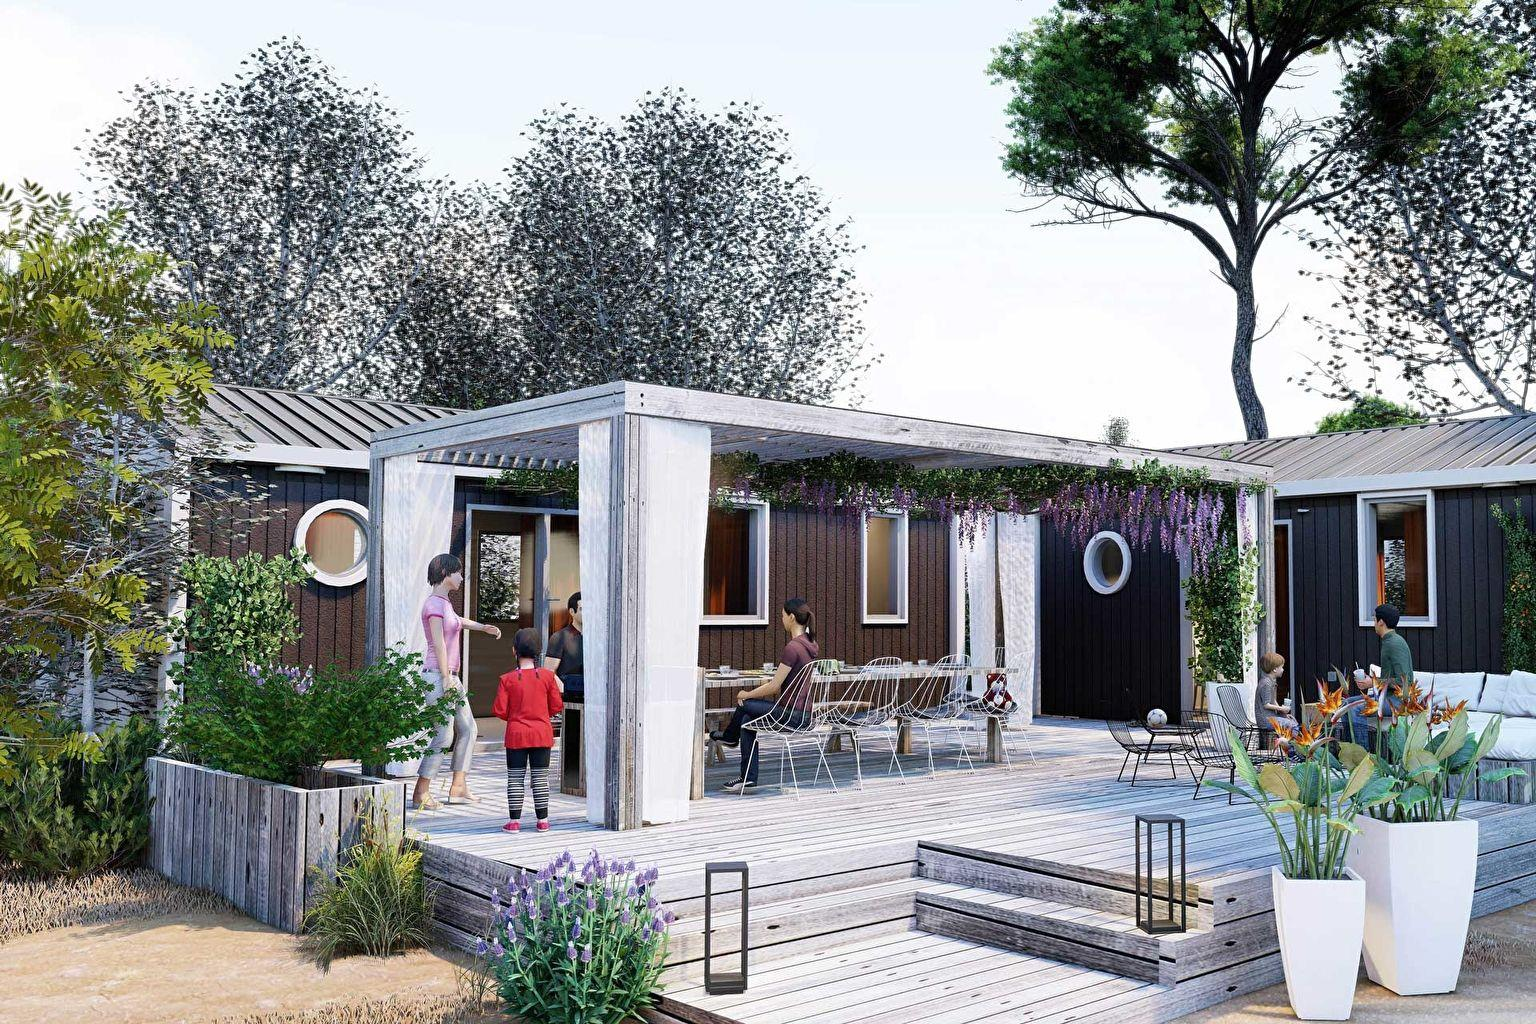 Location - Cottage Friends 5 Chambres **** - Camping Sandaya Riviera d'Azur